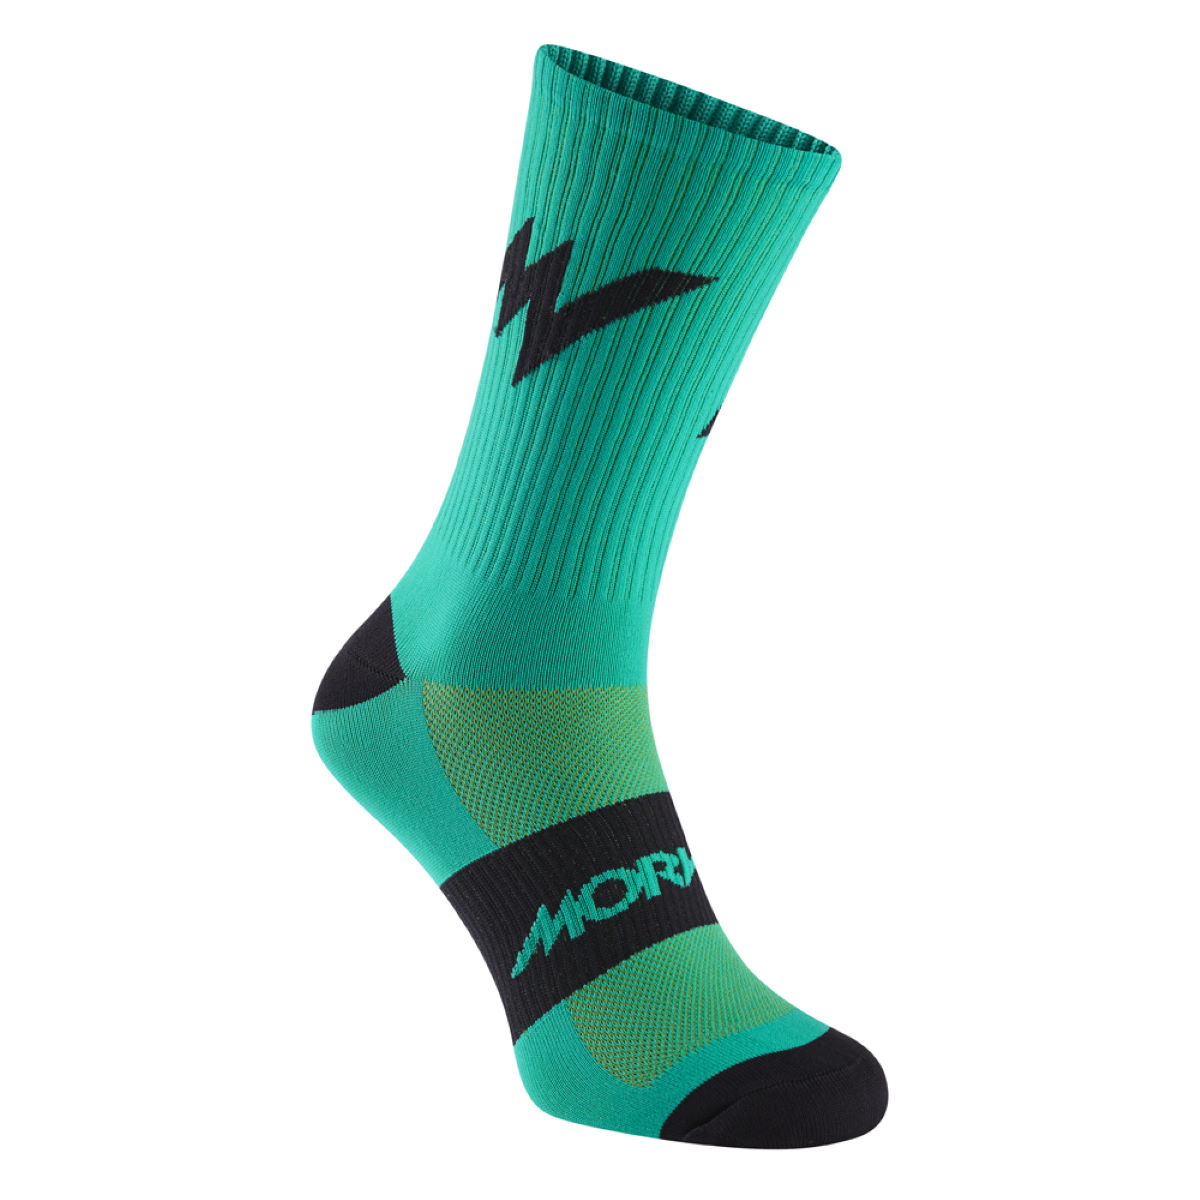 Image of Chaussettes Morvelo Series - S/M Vert | Chaussettes